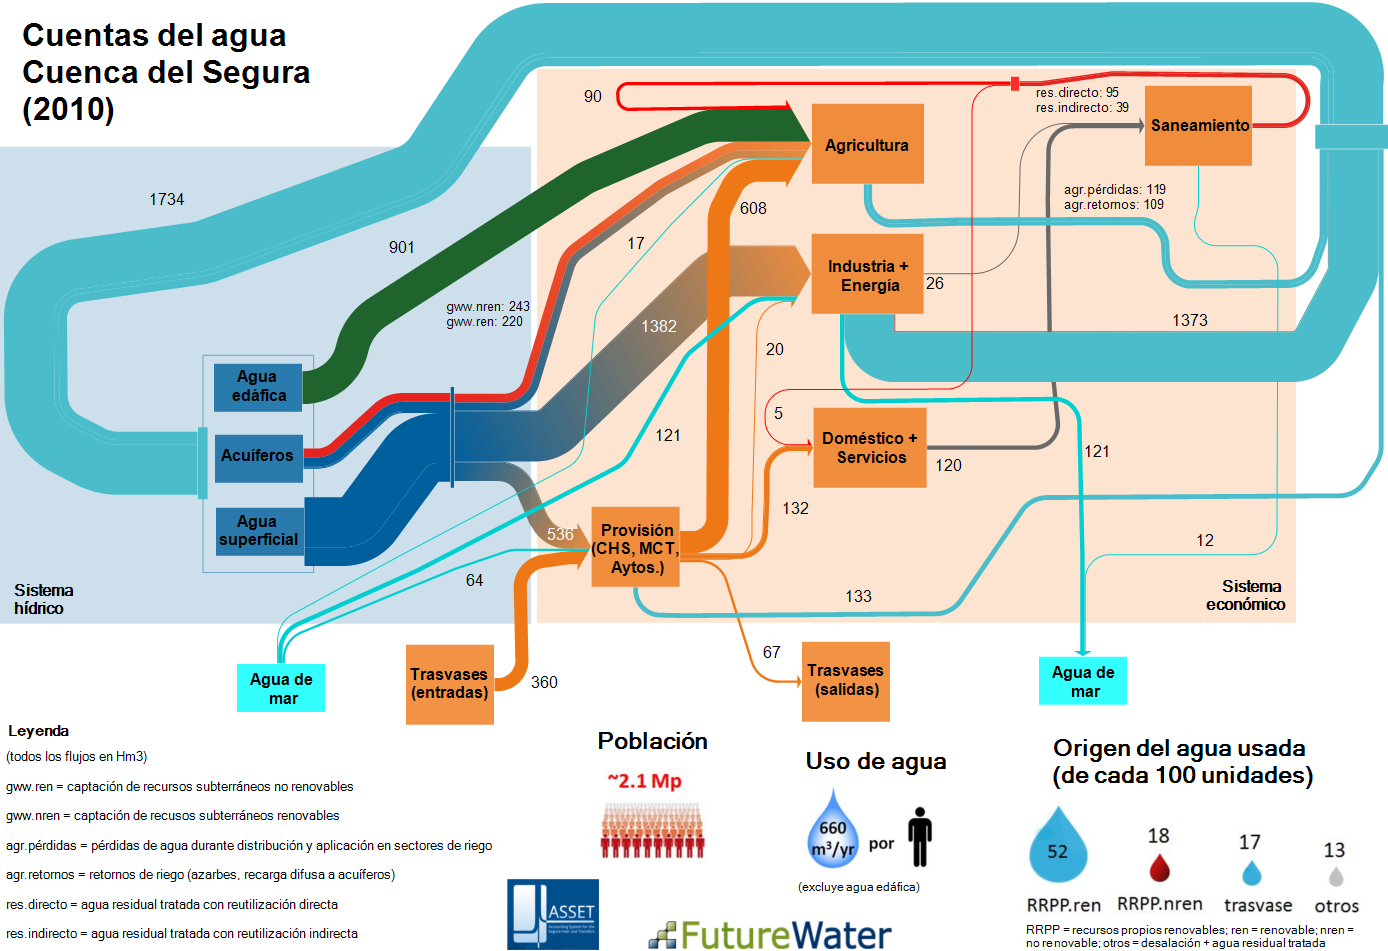 future_water_2010_spain nggid041197 ngg0dyn 0x0x100 00f0w010c010r110f110r010t010 sankey diagrams water